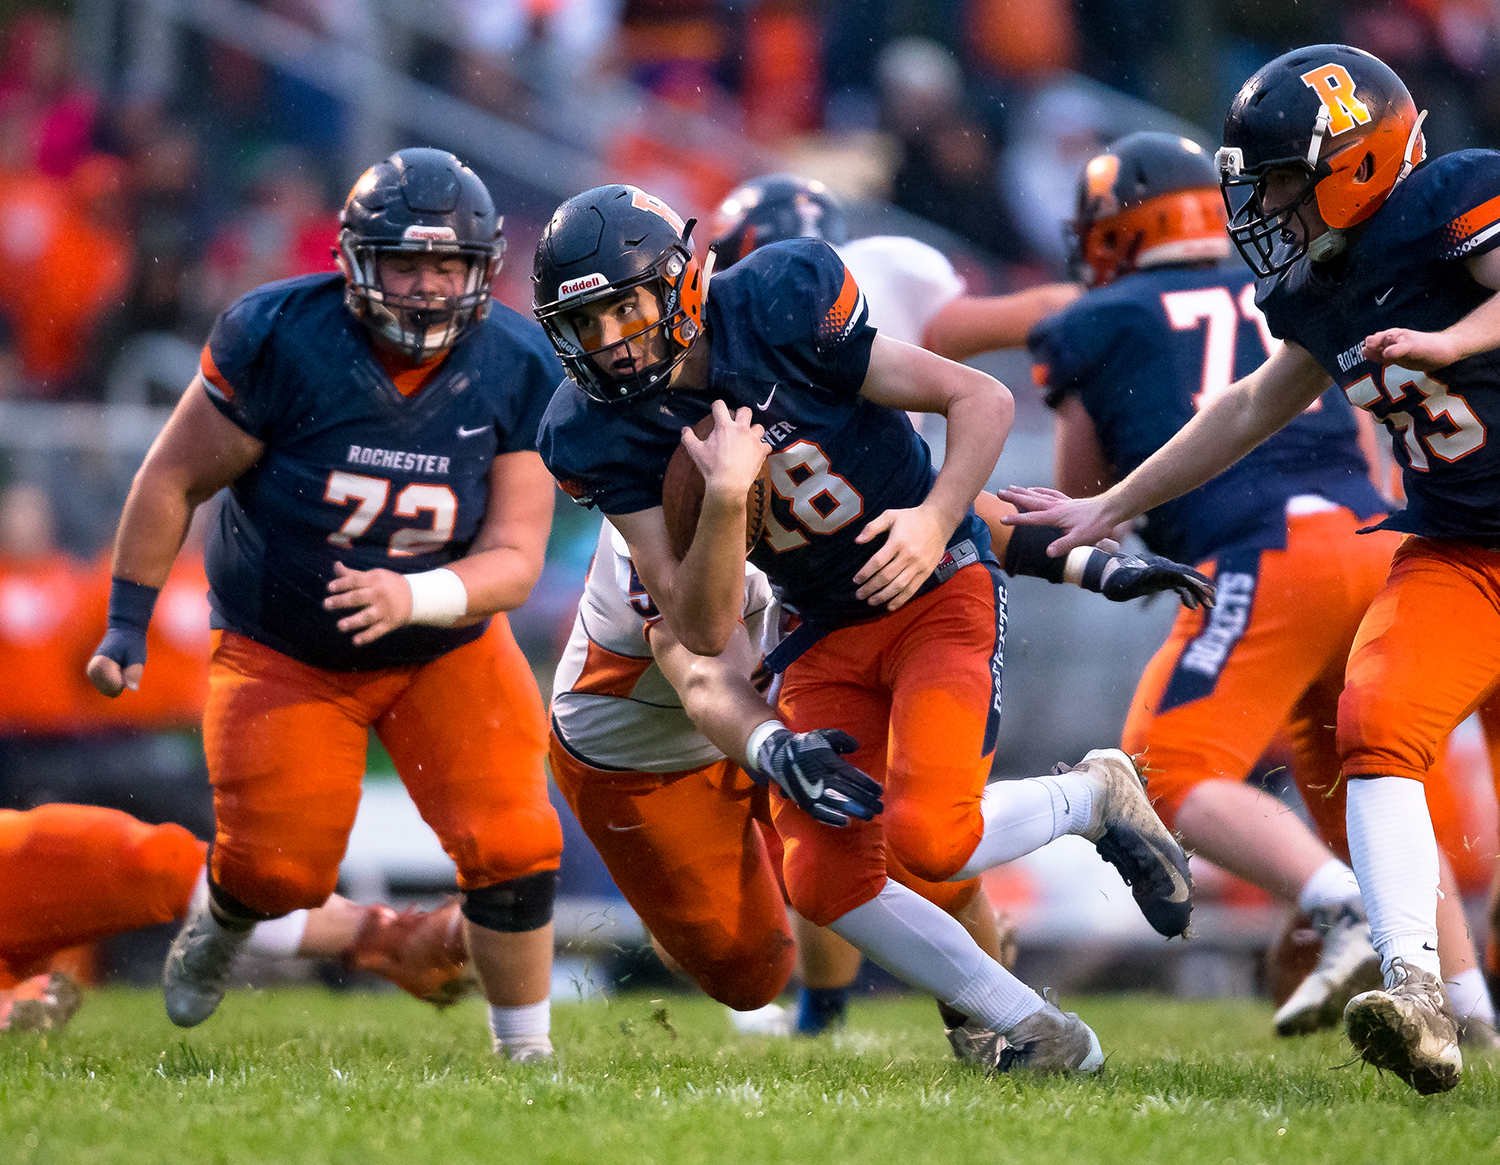 Rochester quarterback Clay Bruno (18) tucks the ball in as he takes off on a rush against Pontiac in the first half in the second round of the Class 4A playoffs at Rochester High School, Saturday, Nov. 3, 2018, in Rochester, Ill. [Justin L. Fowler/The State Journal-Register]